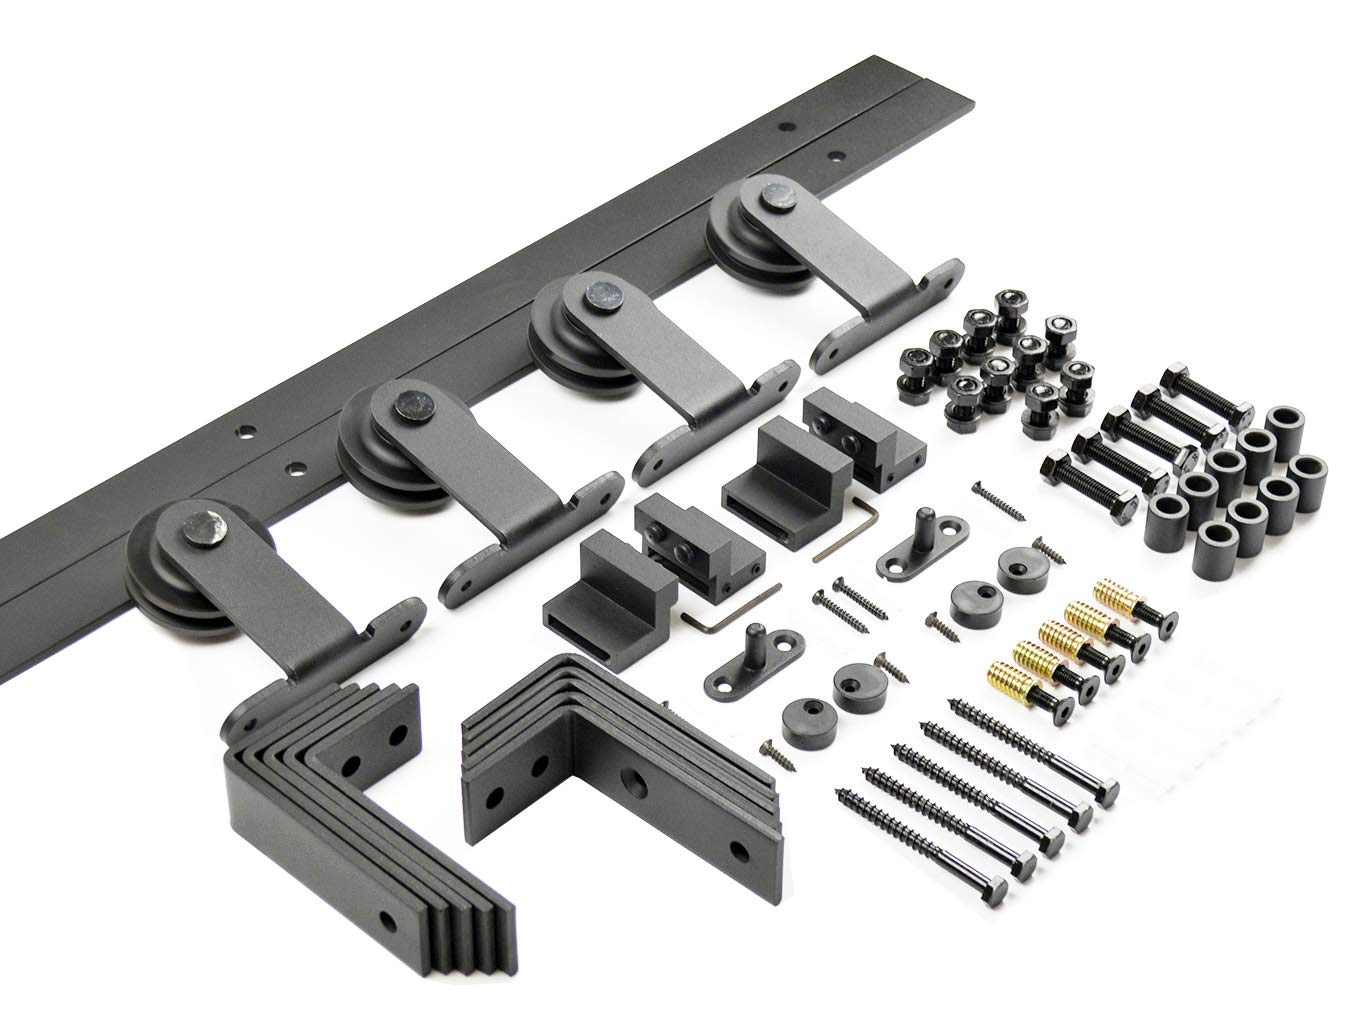 DIYHD 5ft Top Mount Bypass Double Sliding Wood Door Track Hardware Kit for Low Ceiling by DIYHD (Image #3)